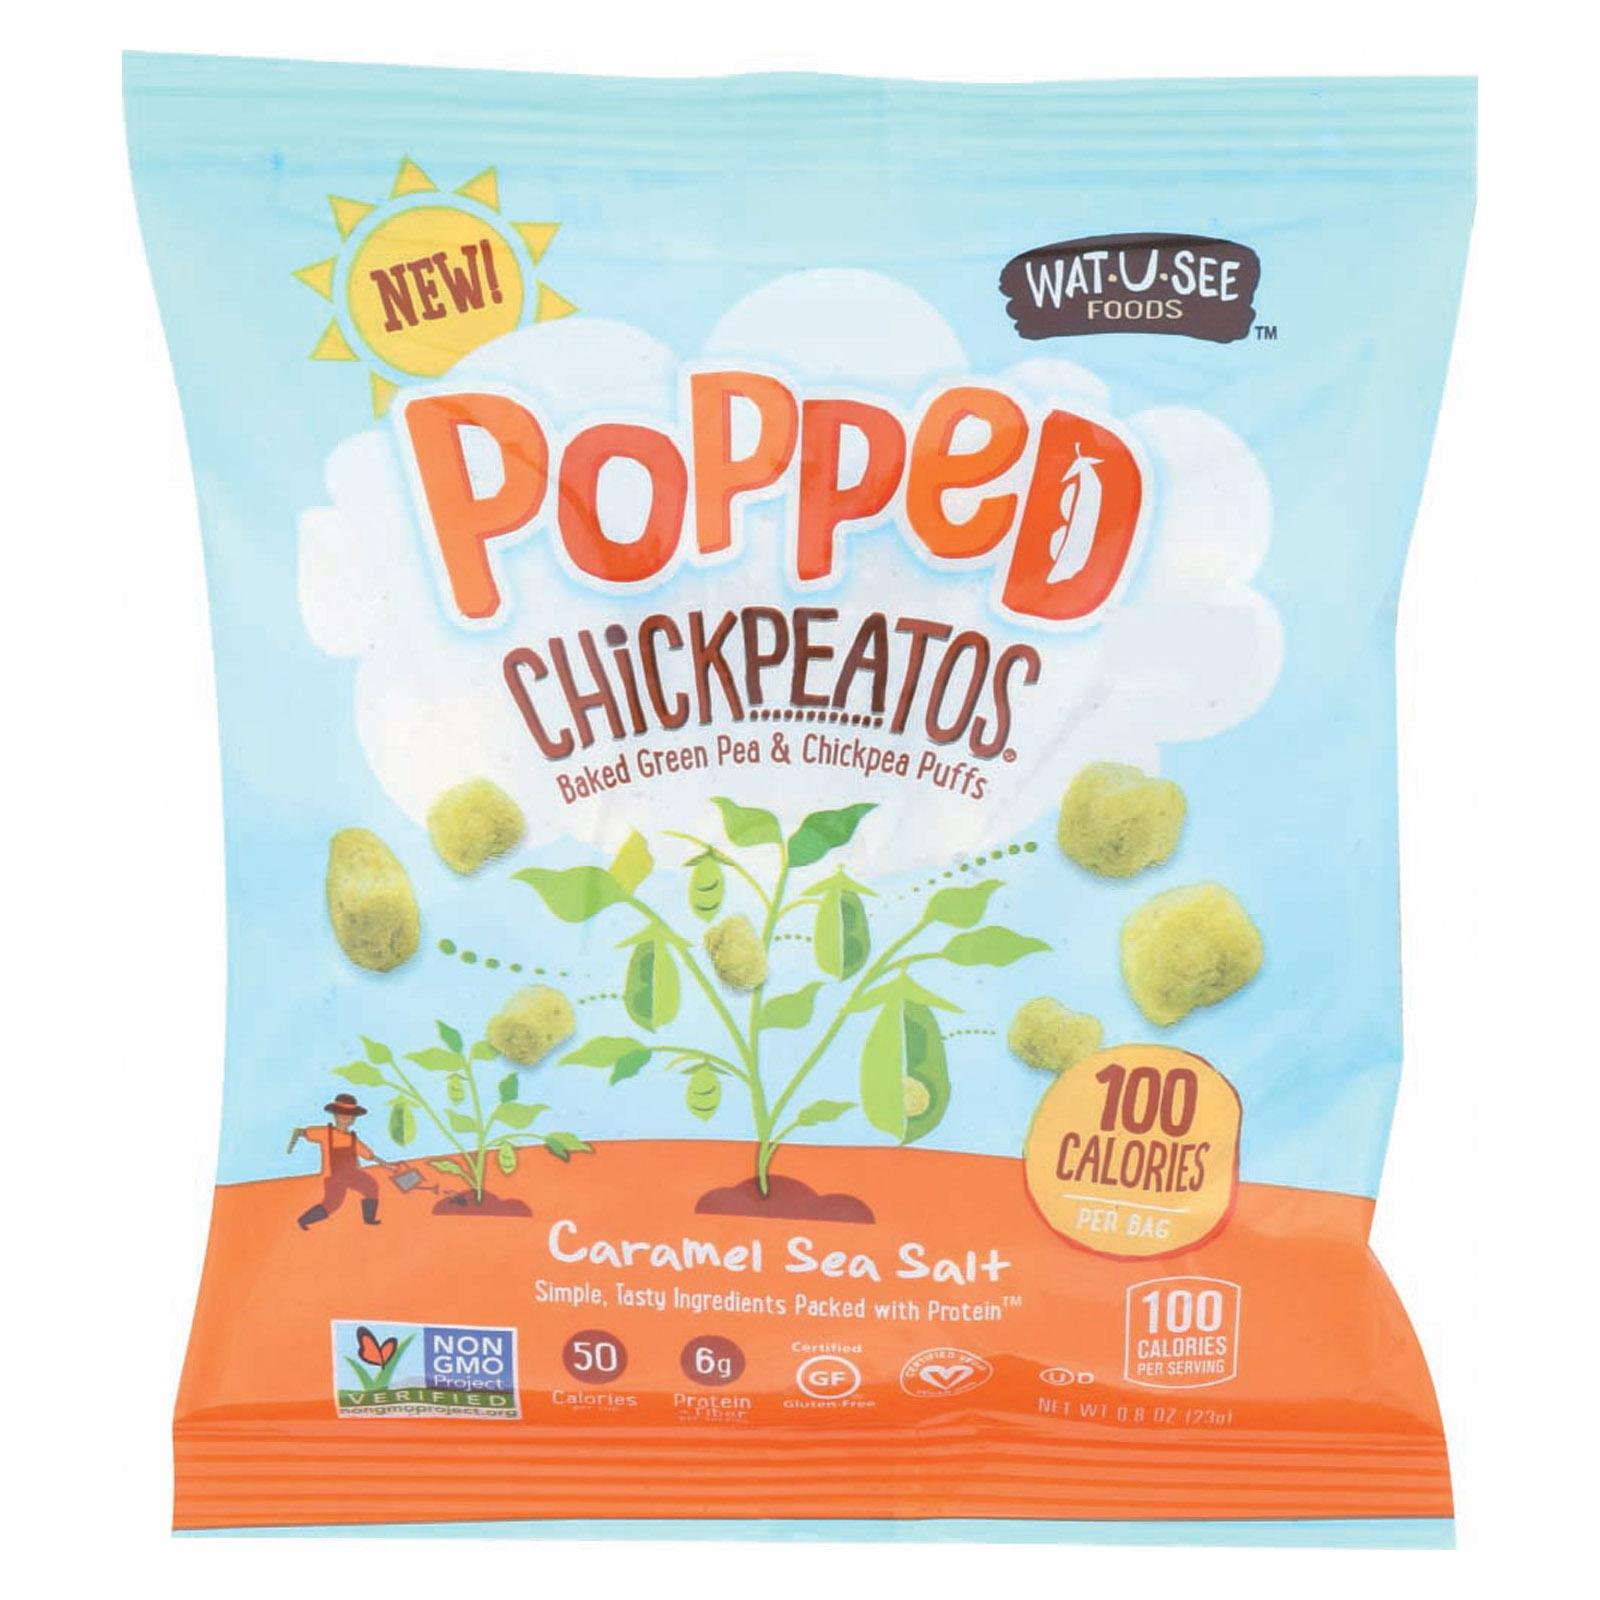 Wat U See Popped Chickpeatos - Caramel Sea Salt